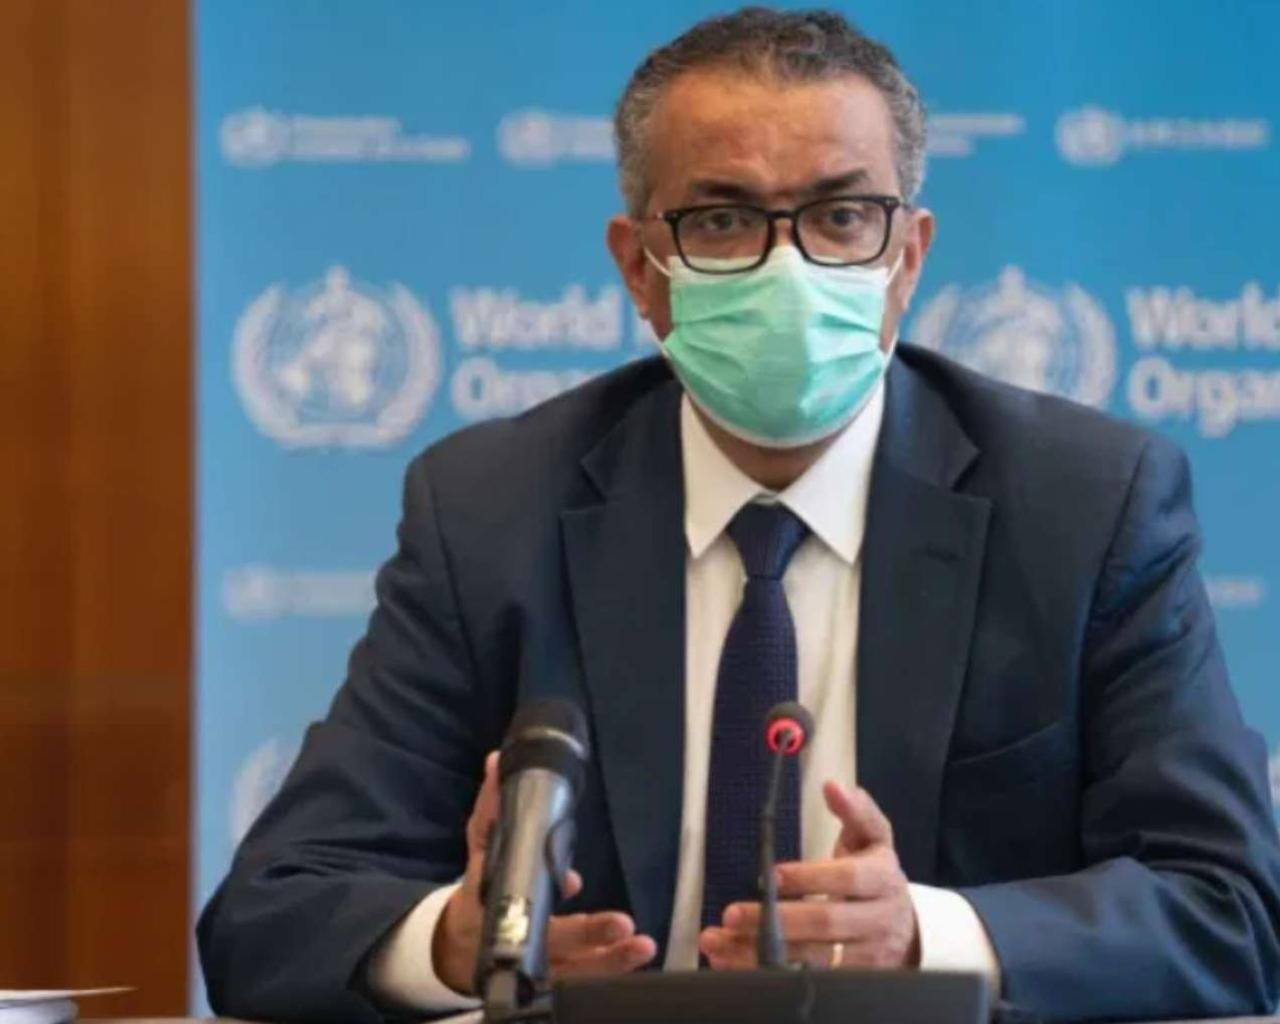 The World Health Organization (WHO) has predicted that the world is advancing the highest rate of infection